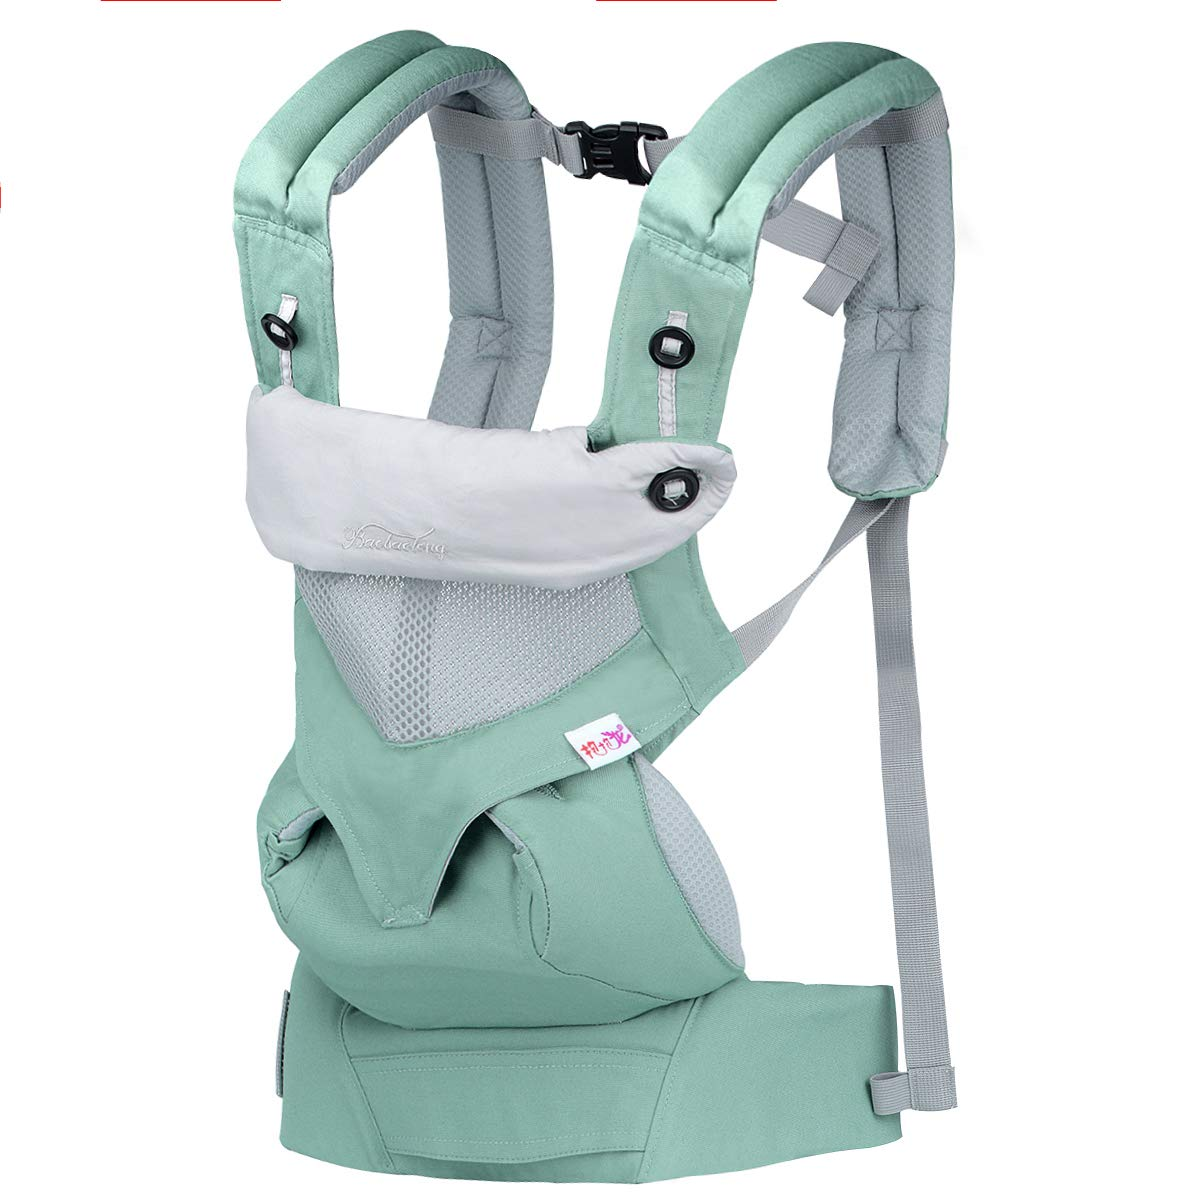 Upgrow Baby Carrier Slings Safety Baby Front Back Carrier Infant Backpack Wrap Harness with Hood